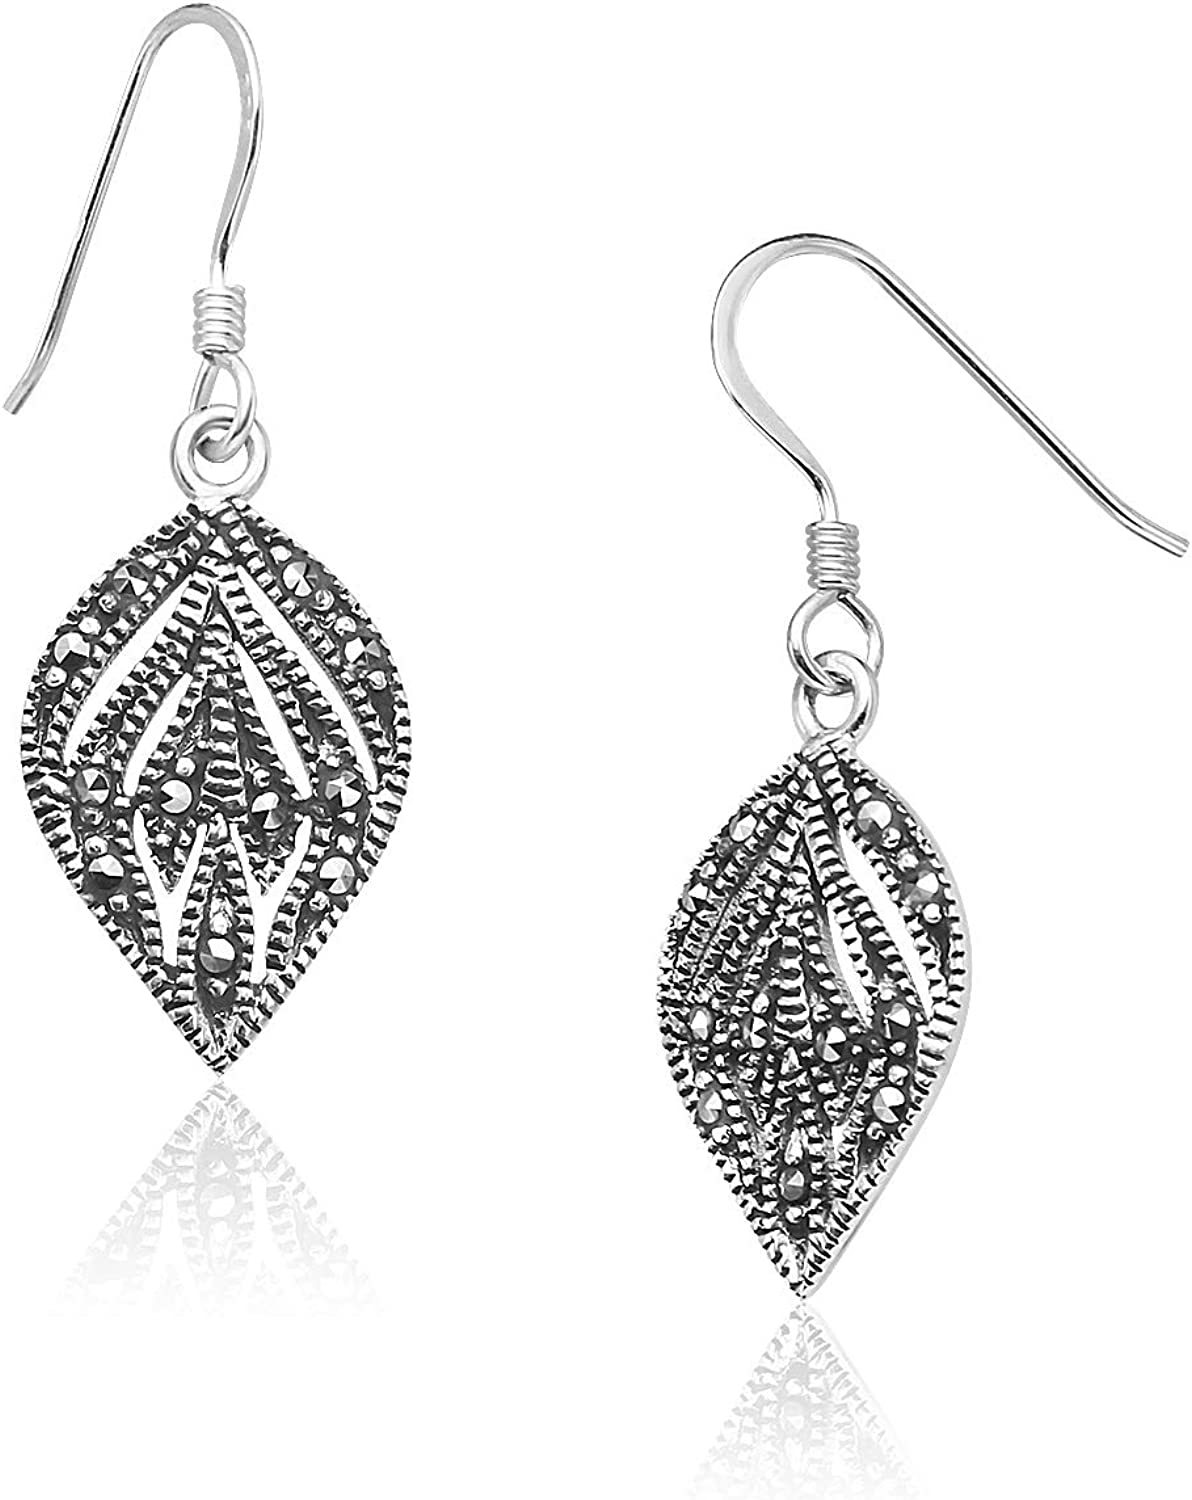 Big Apple Hoops - Marcasite Classic Leaf Dangle Earrings Made from Genuine Solid 925 Sterling Silver Lightweight and Unique Design